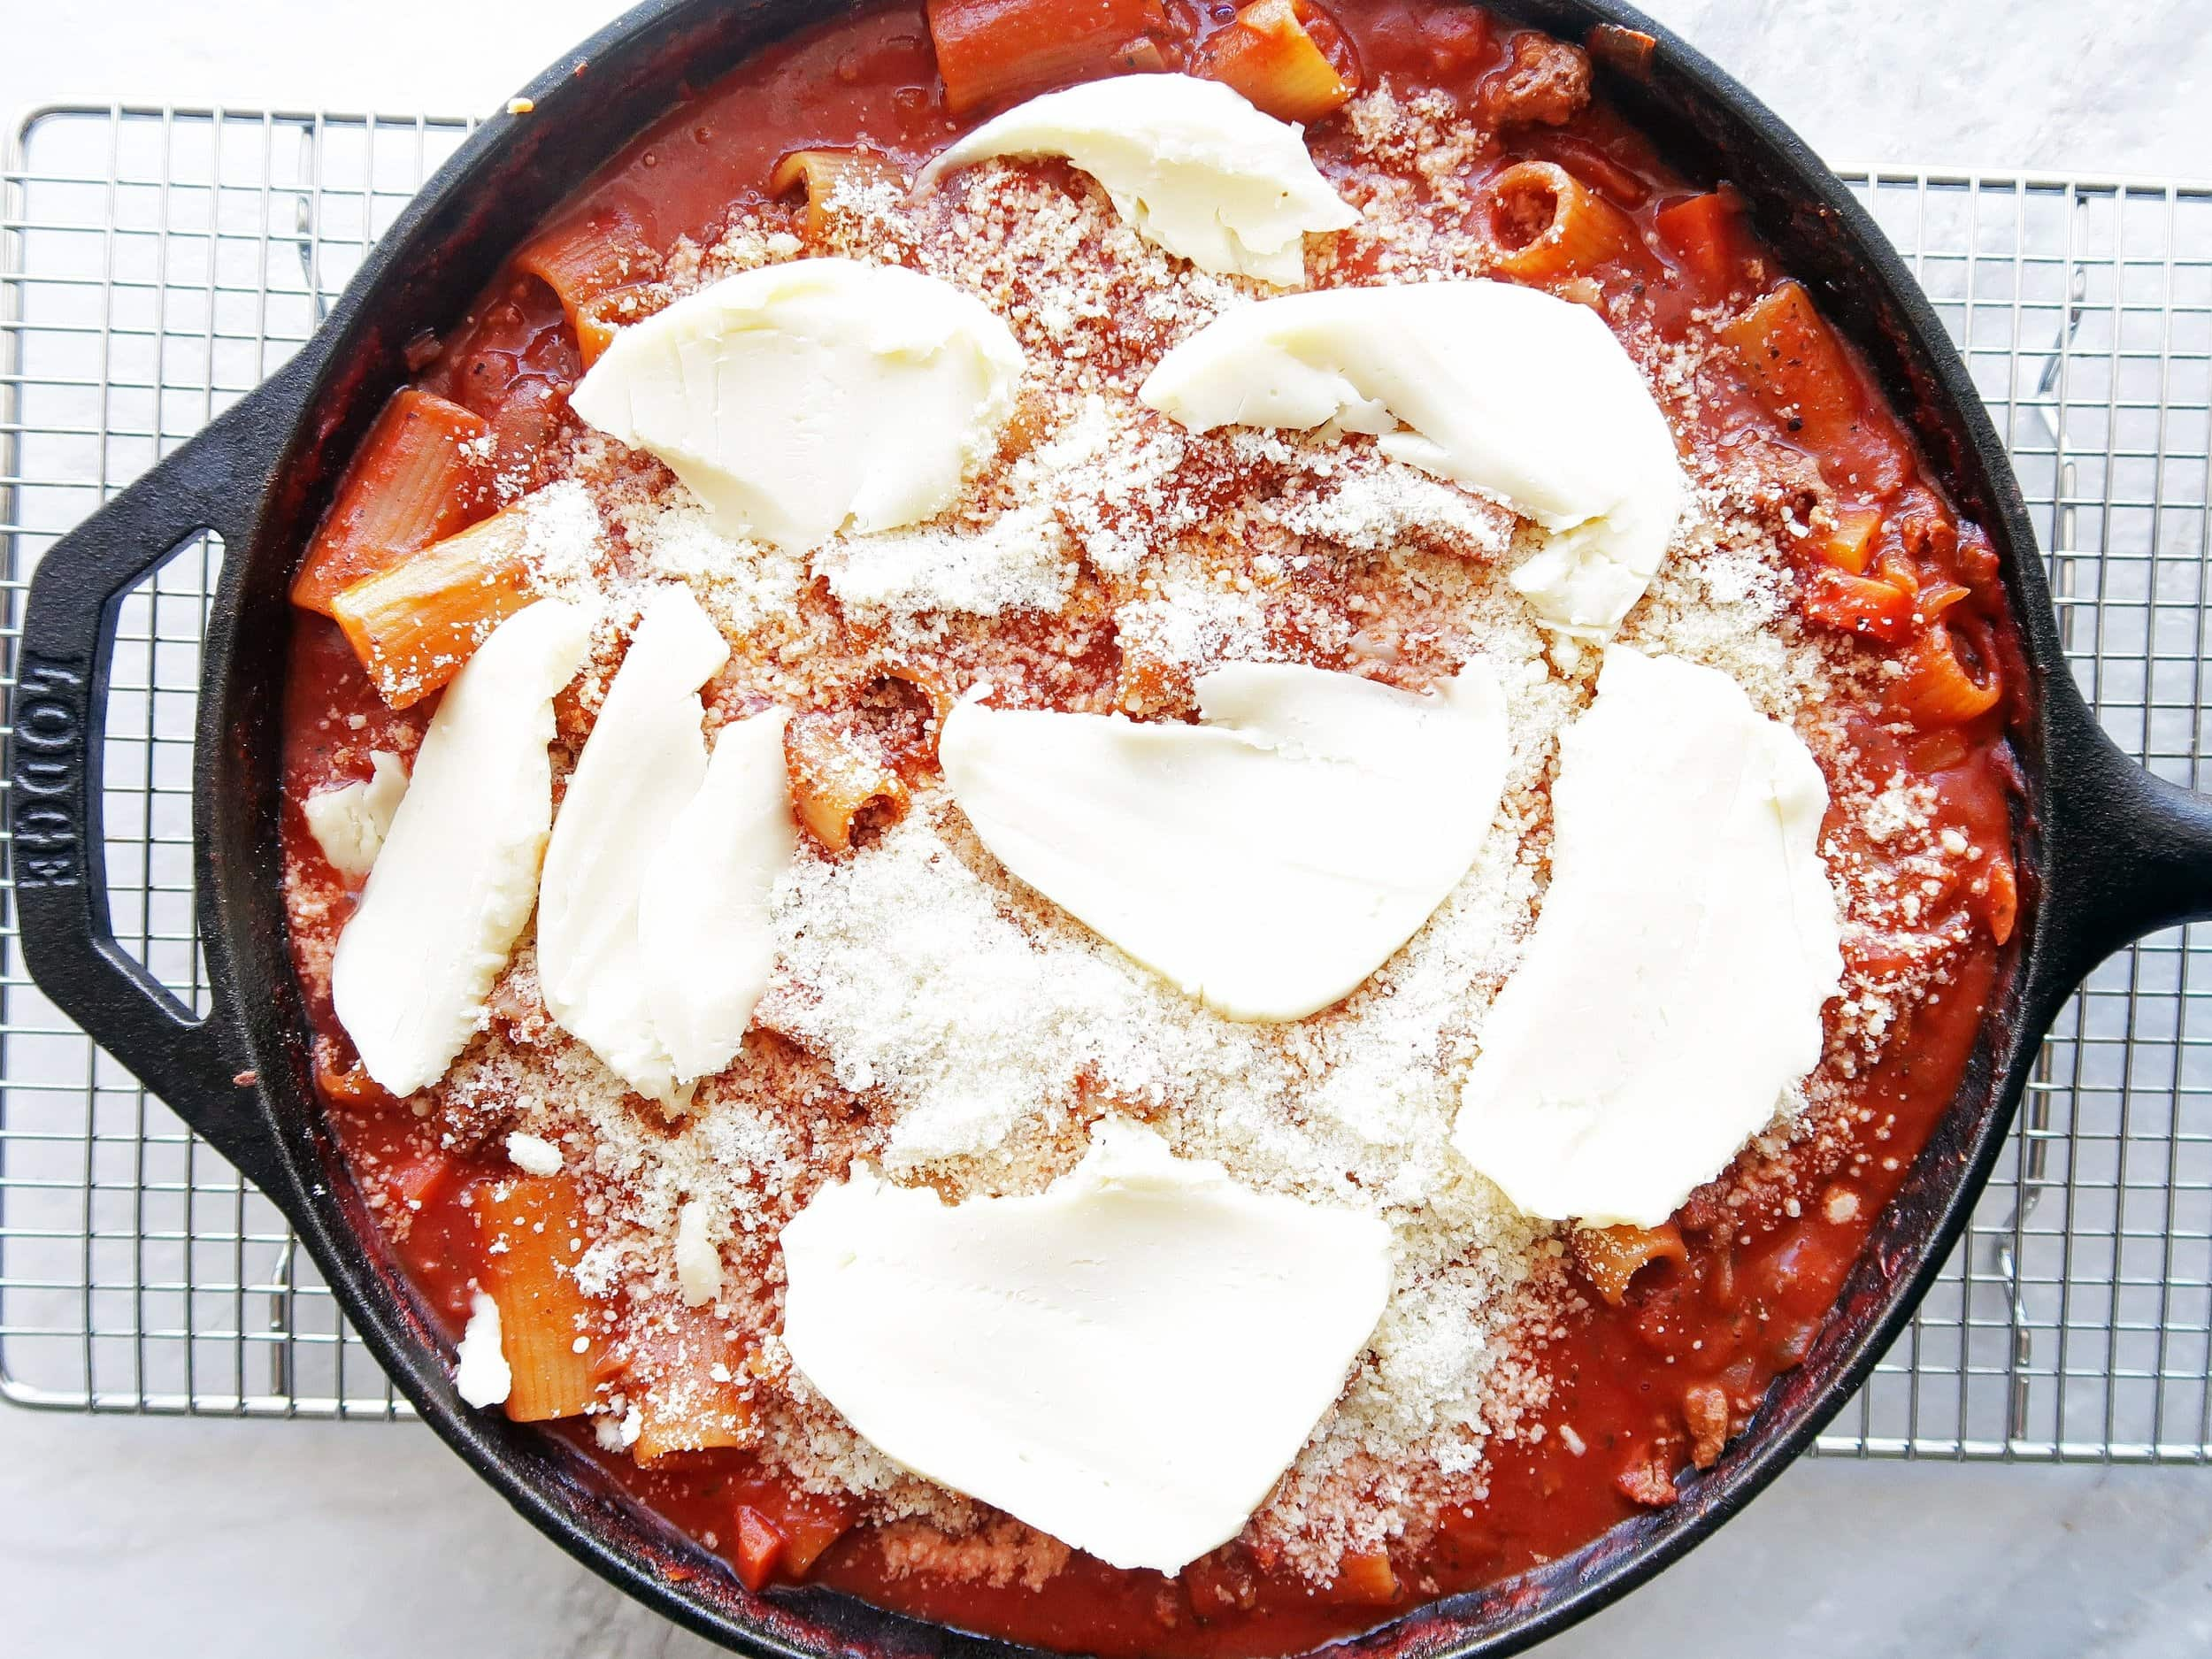 A cast iron skillet filled with rigatoni covered in meat sauce and topped with mozzarella and parmesan.